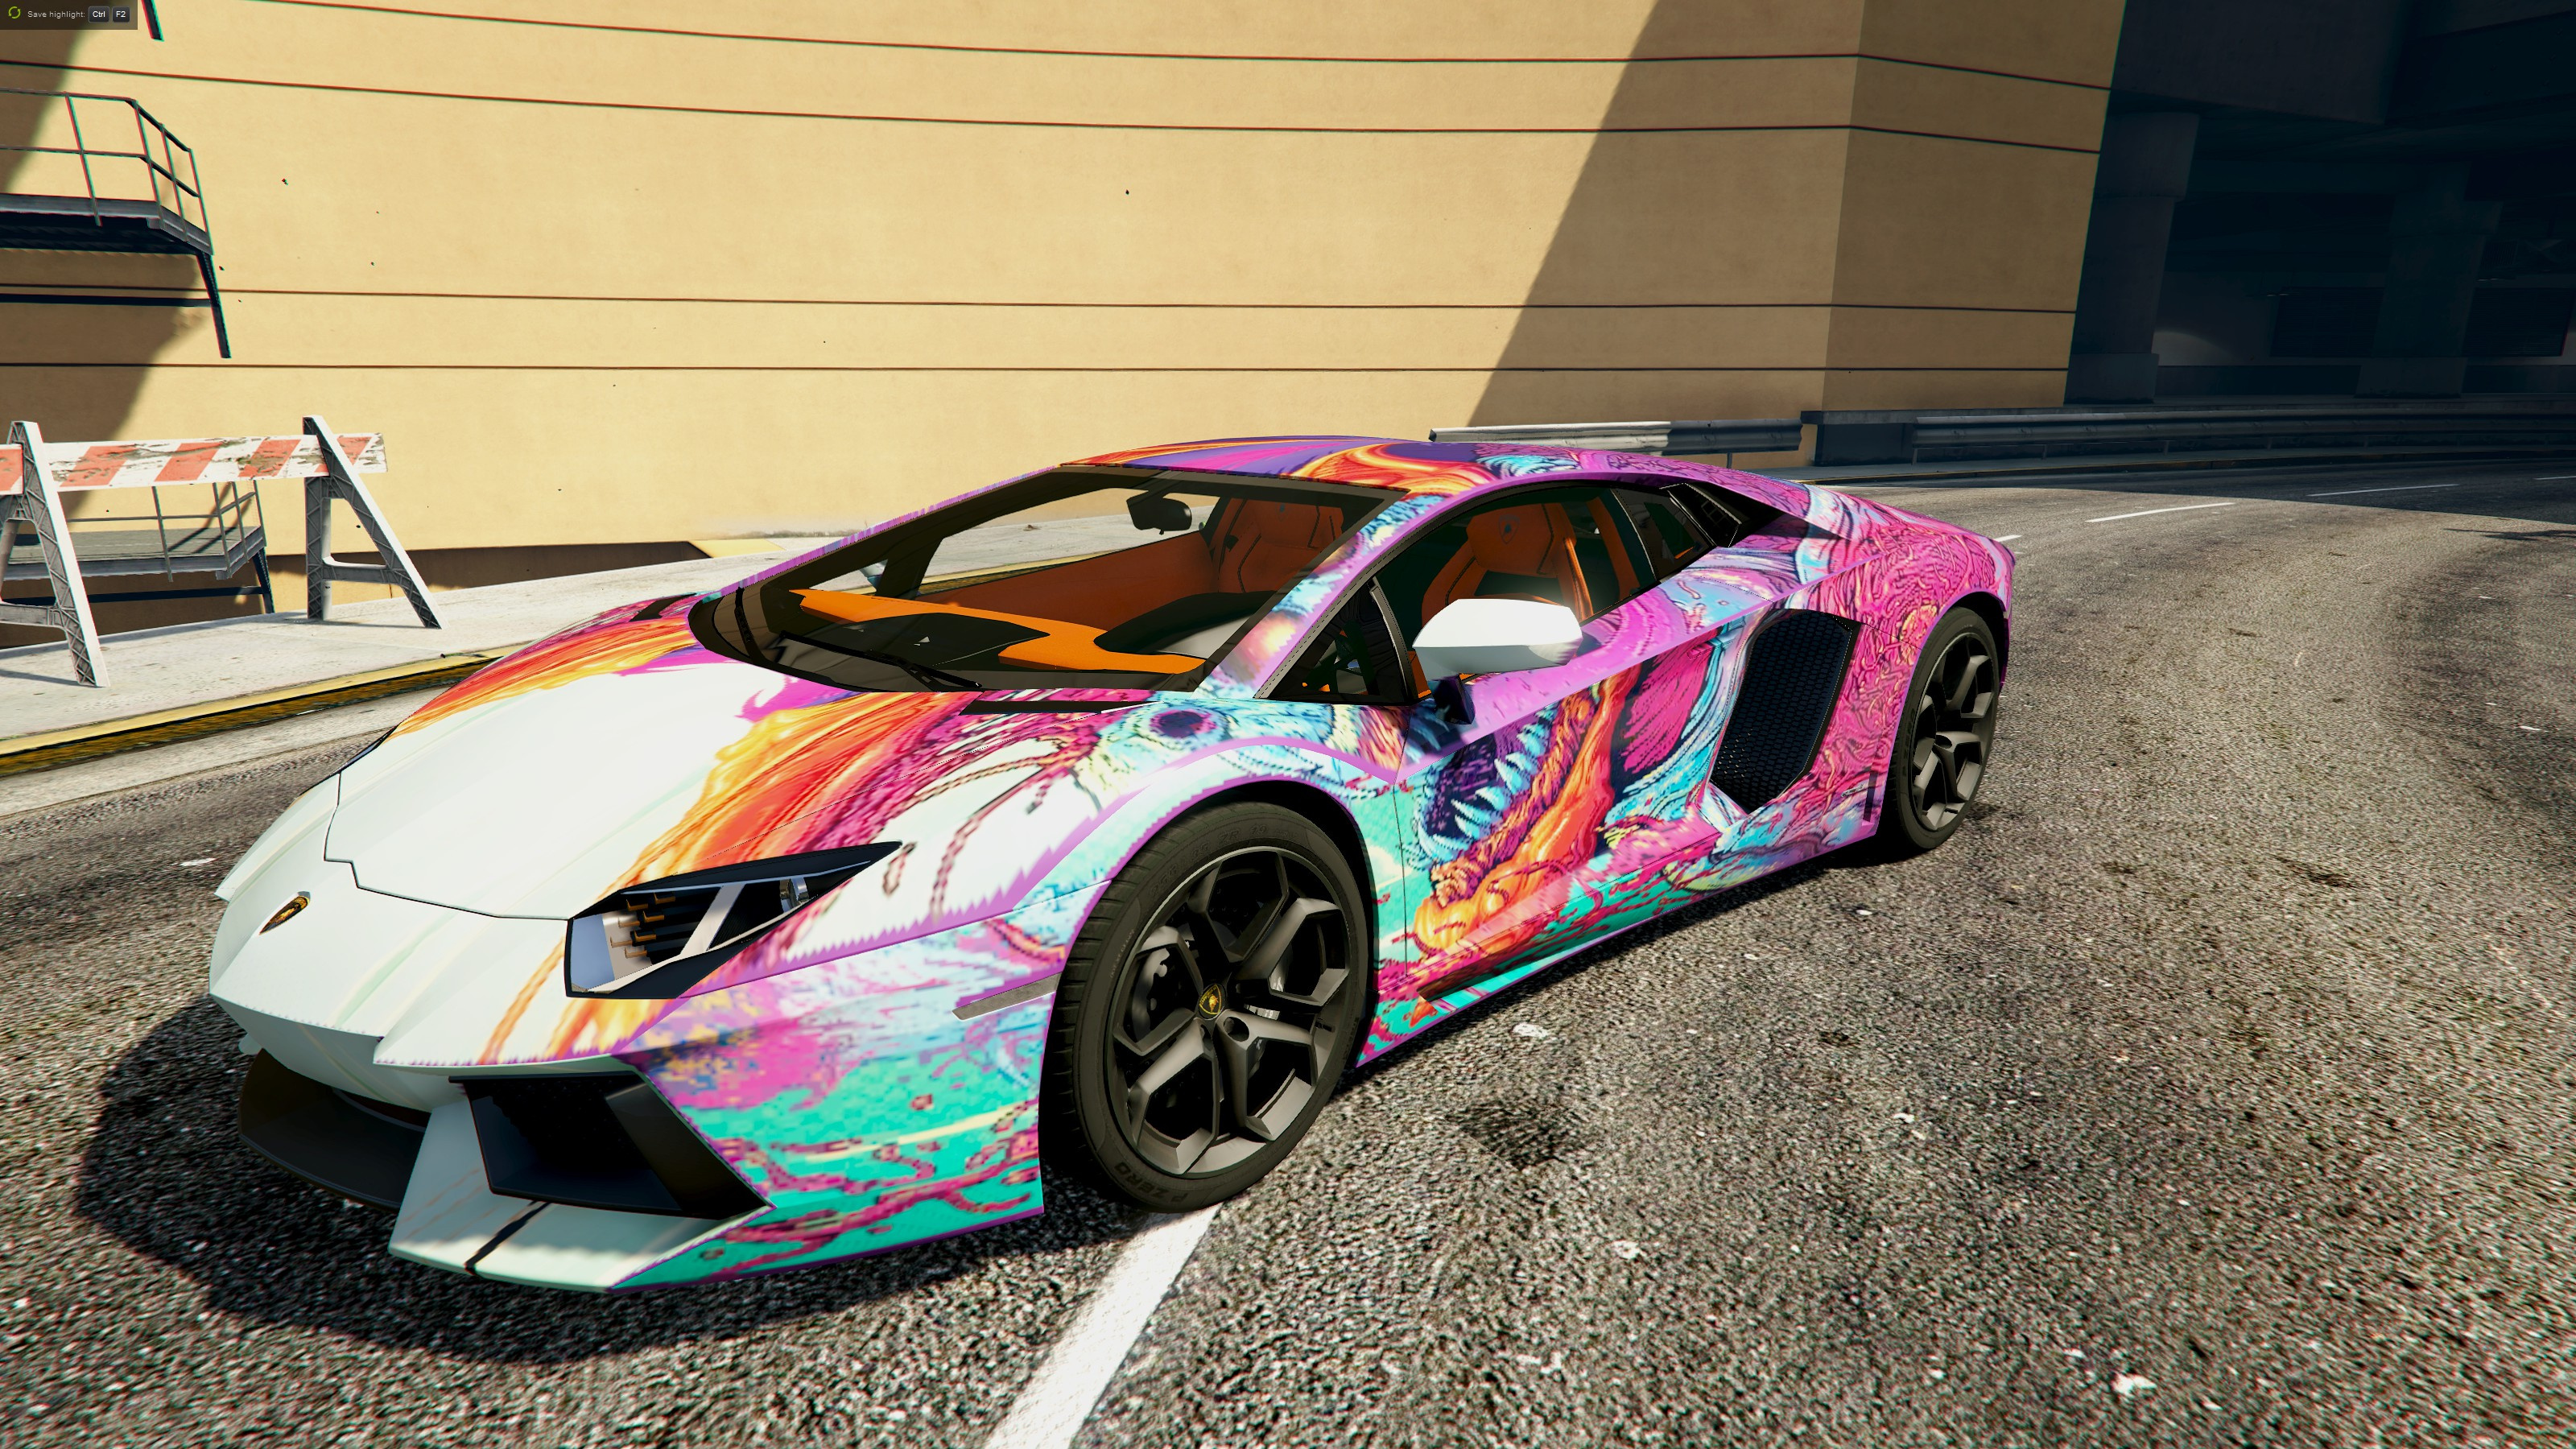 skyline helicopters with Hyper Beast Lamborghini Aventador Livery on Sunset Bright Sun Road Skyline Horizon 19166 as well Do Look World S STUNNING Panoramic Landscapes Never Seen Before further File LOS ANGELES REACTIVE POLLUTANT PROGRAM  LARPP   A UNIQUE MULTI AGENCY AIR POLLUTION RESEARCH STUDY SPONSORED BY THE      NARA   552379 as well 15 Dog Memes That Prove That The Inter  Has No Chill besides 2.